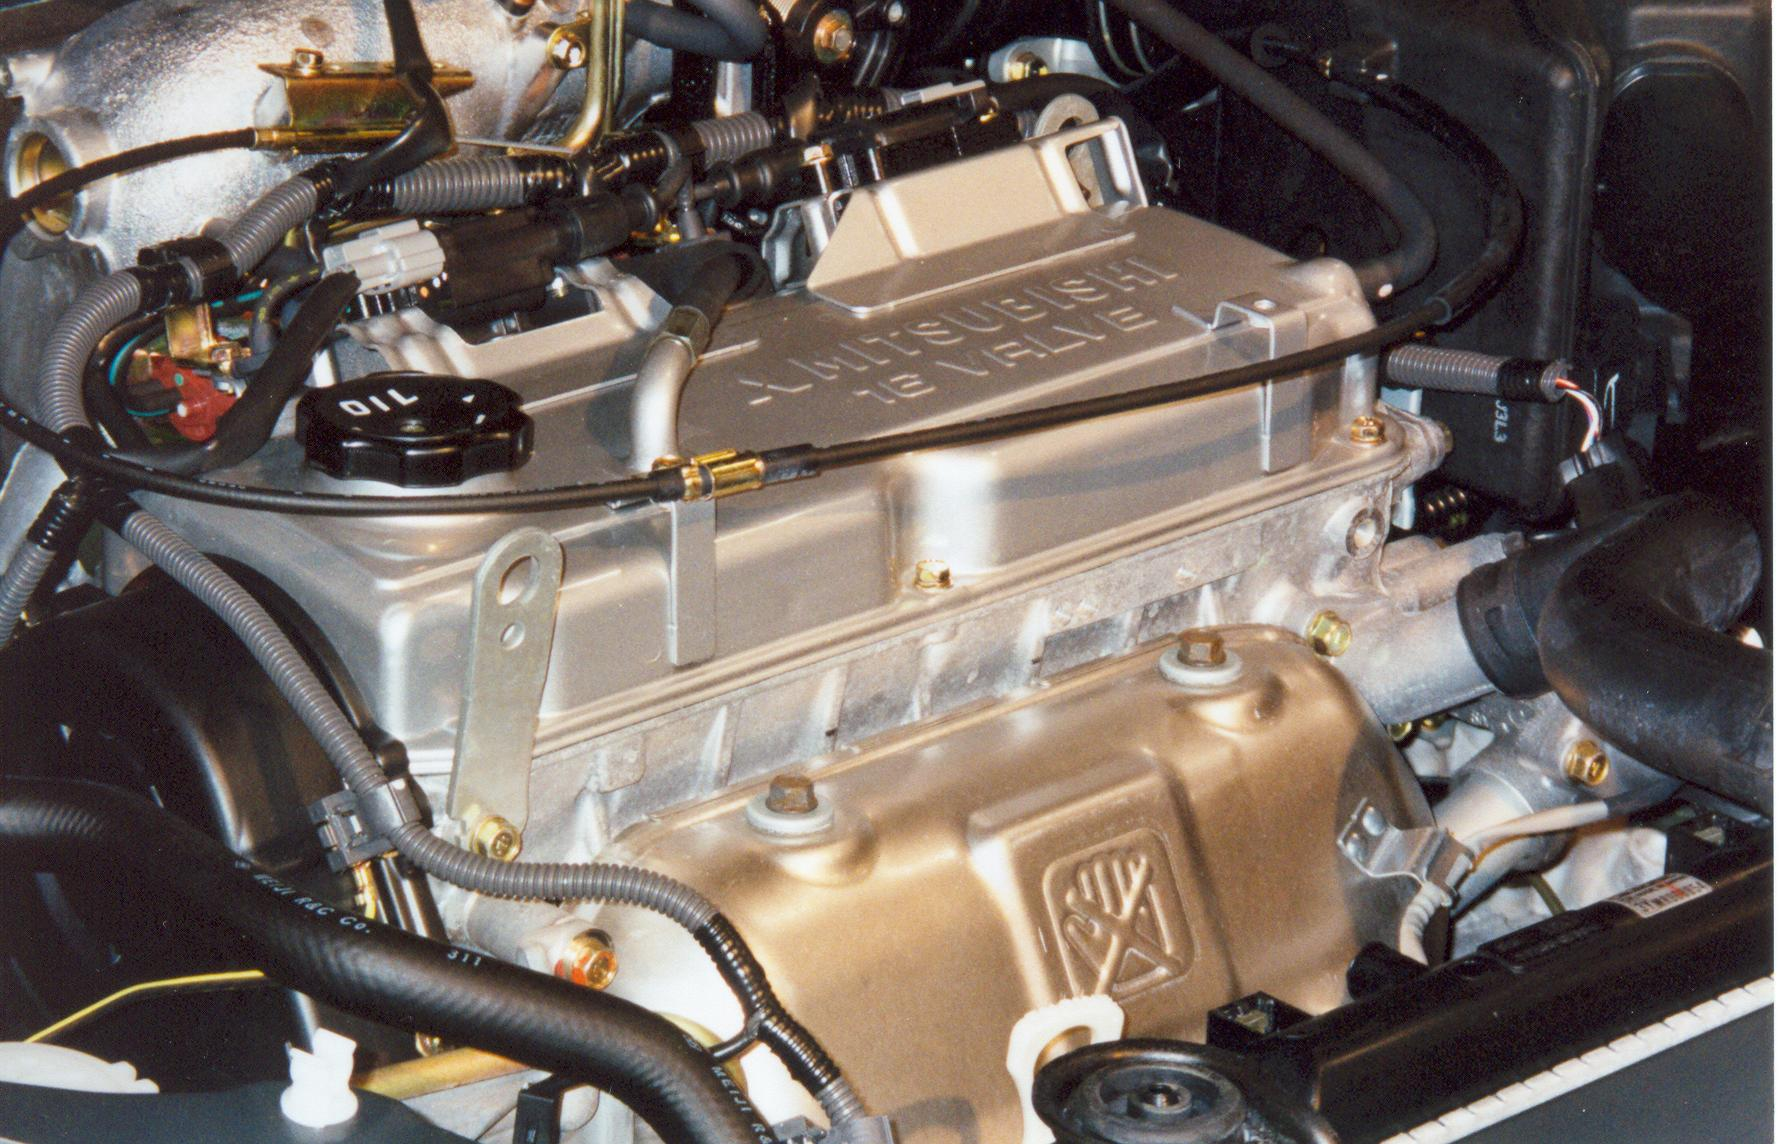 Mitsubishi 4G9 engine - Wikipedia